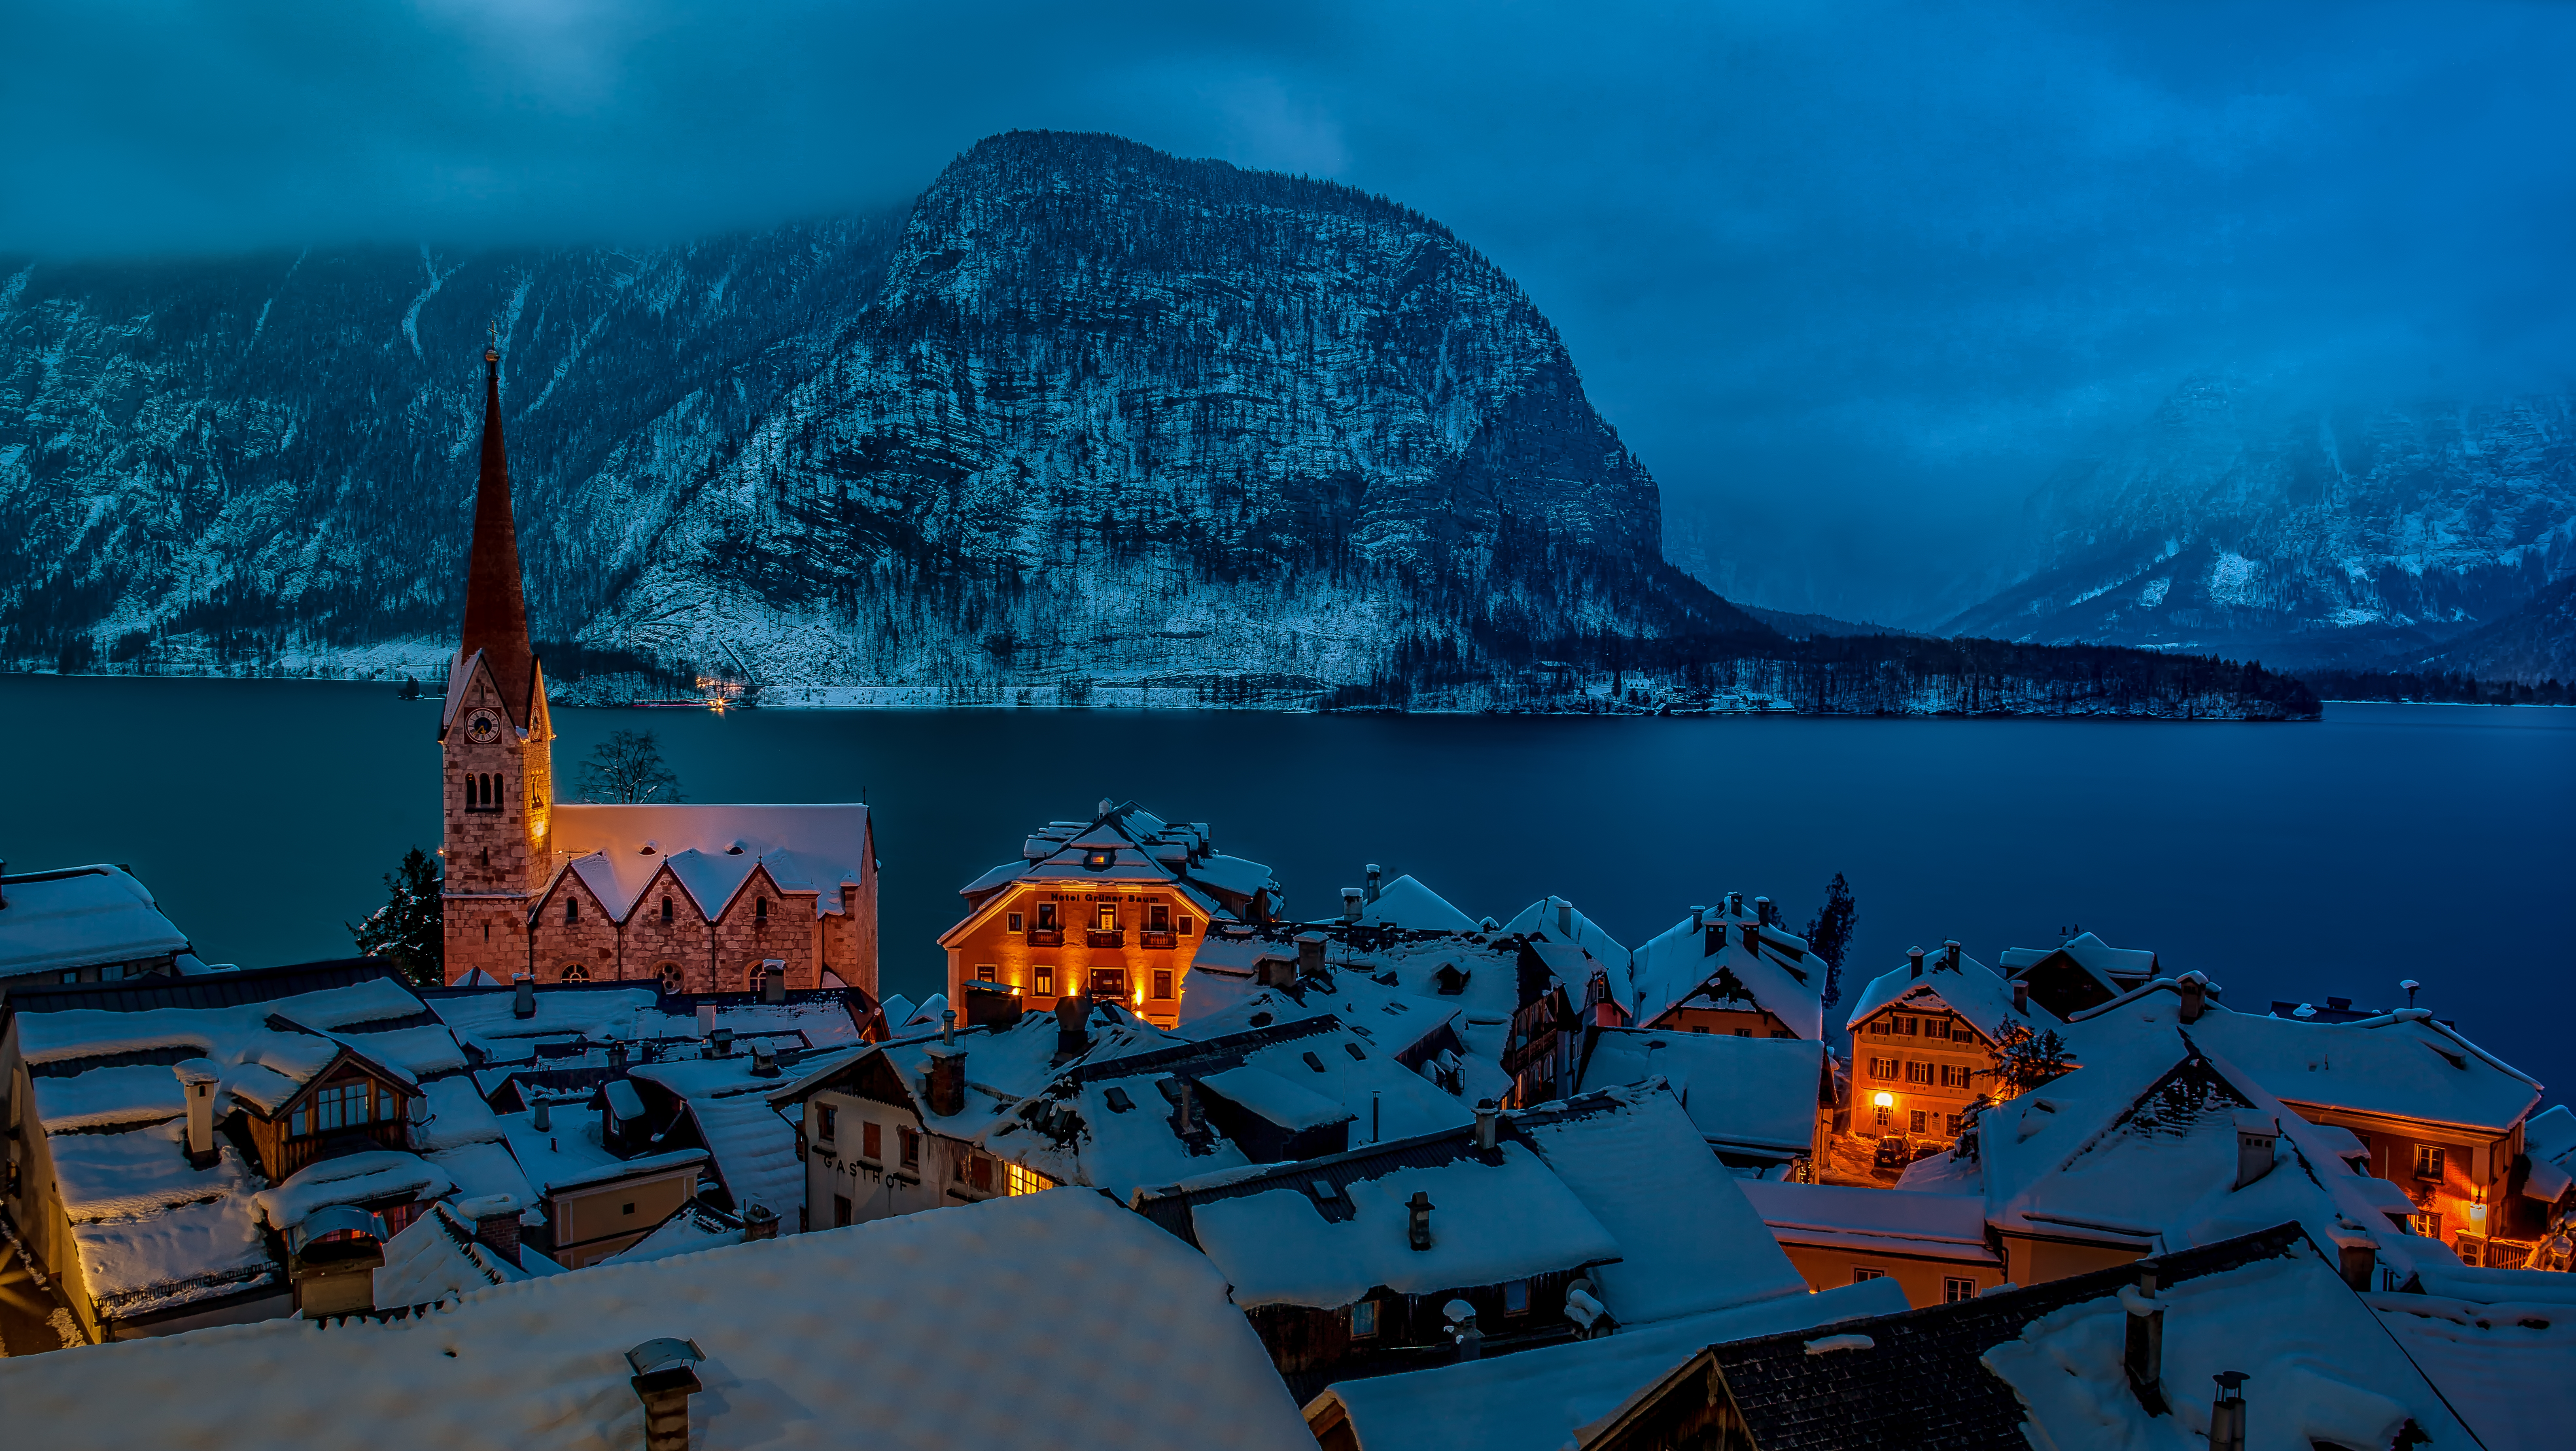 Winter Night In Hallstatt Austria 5k Retina Ultra HD Wallpaper